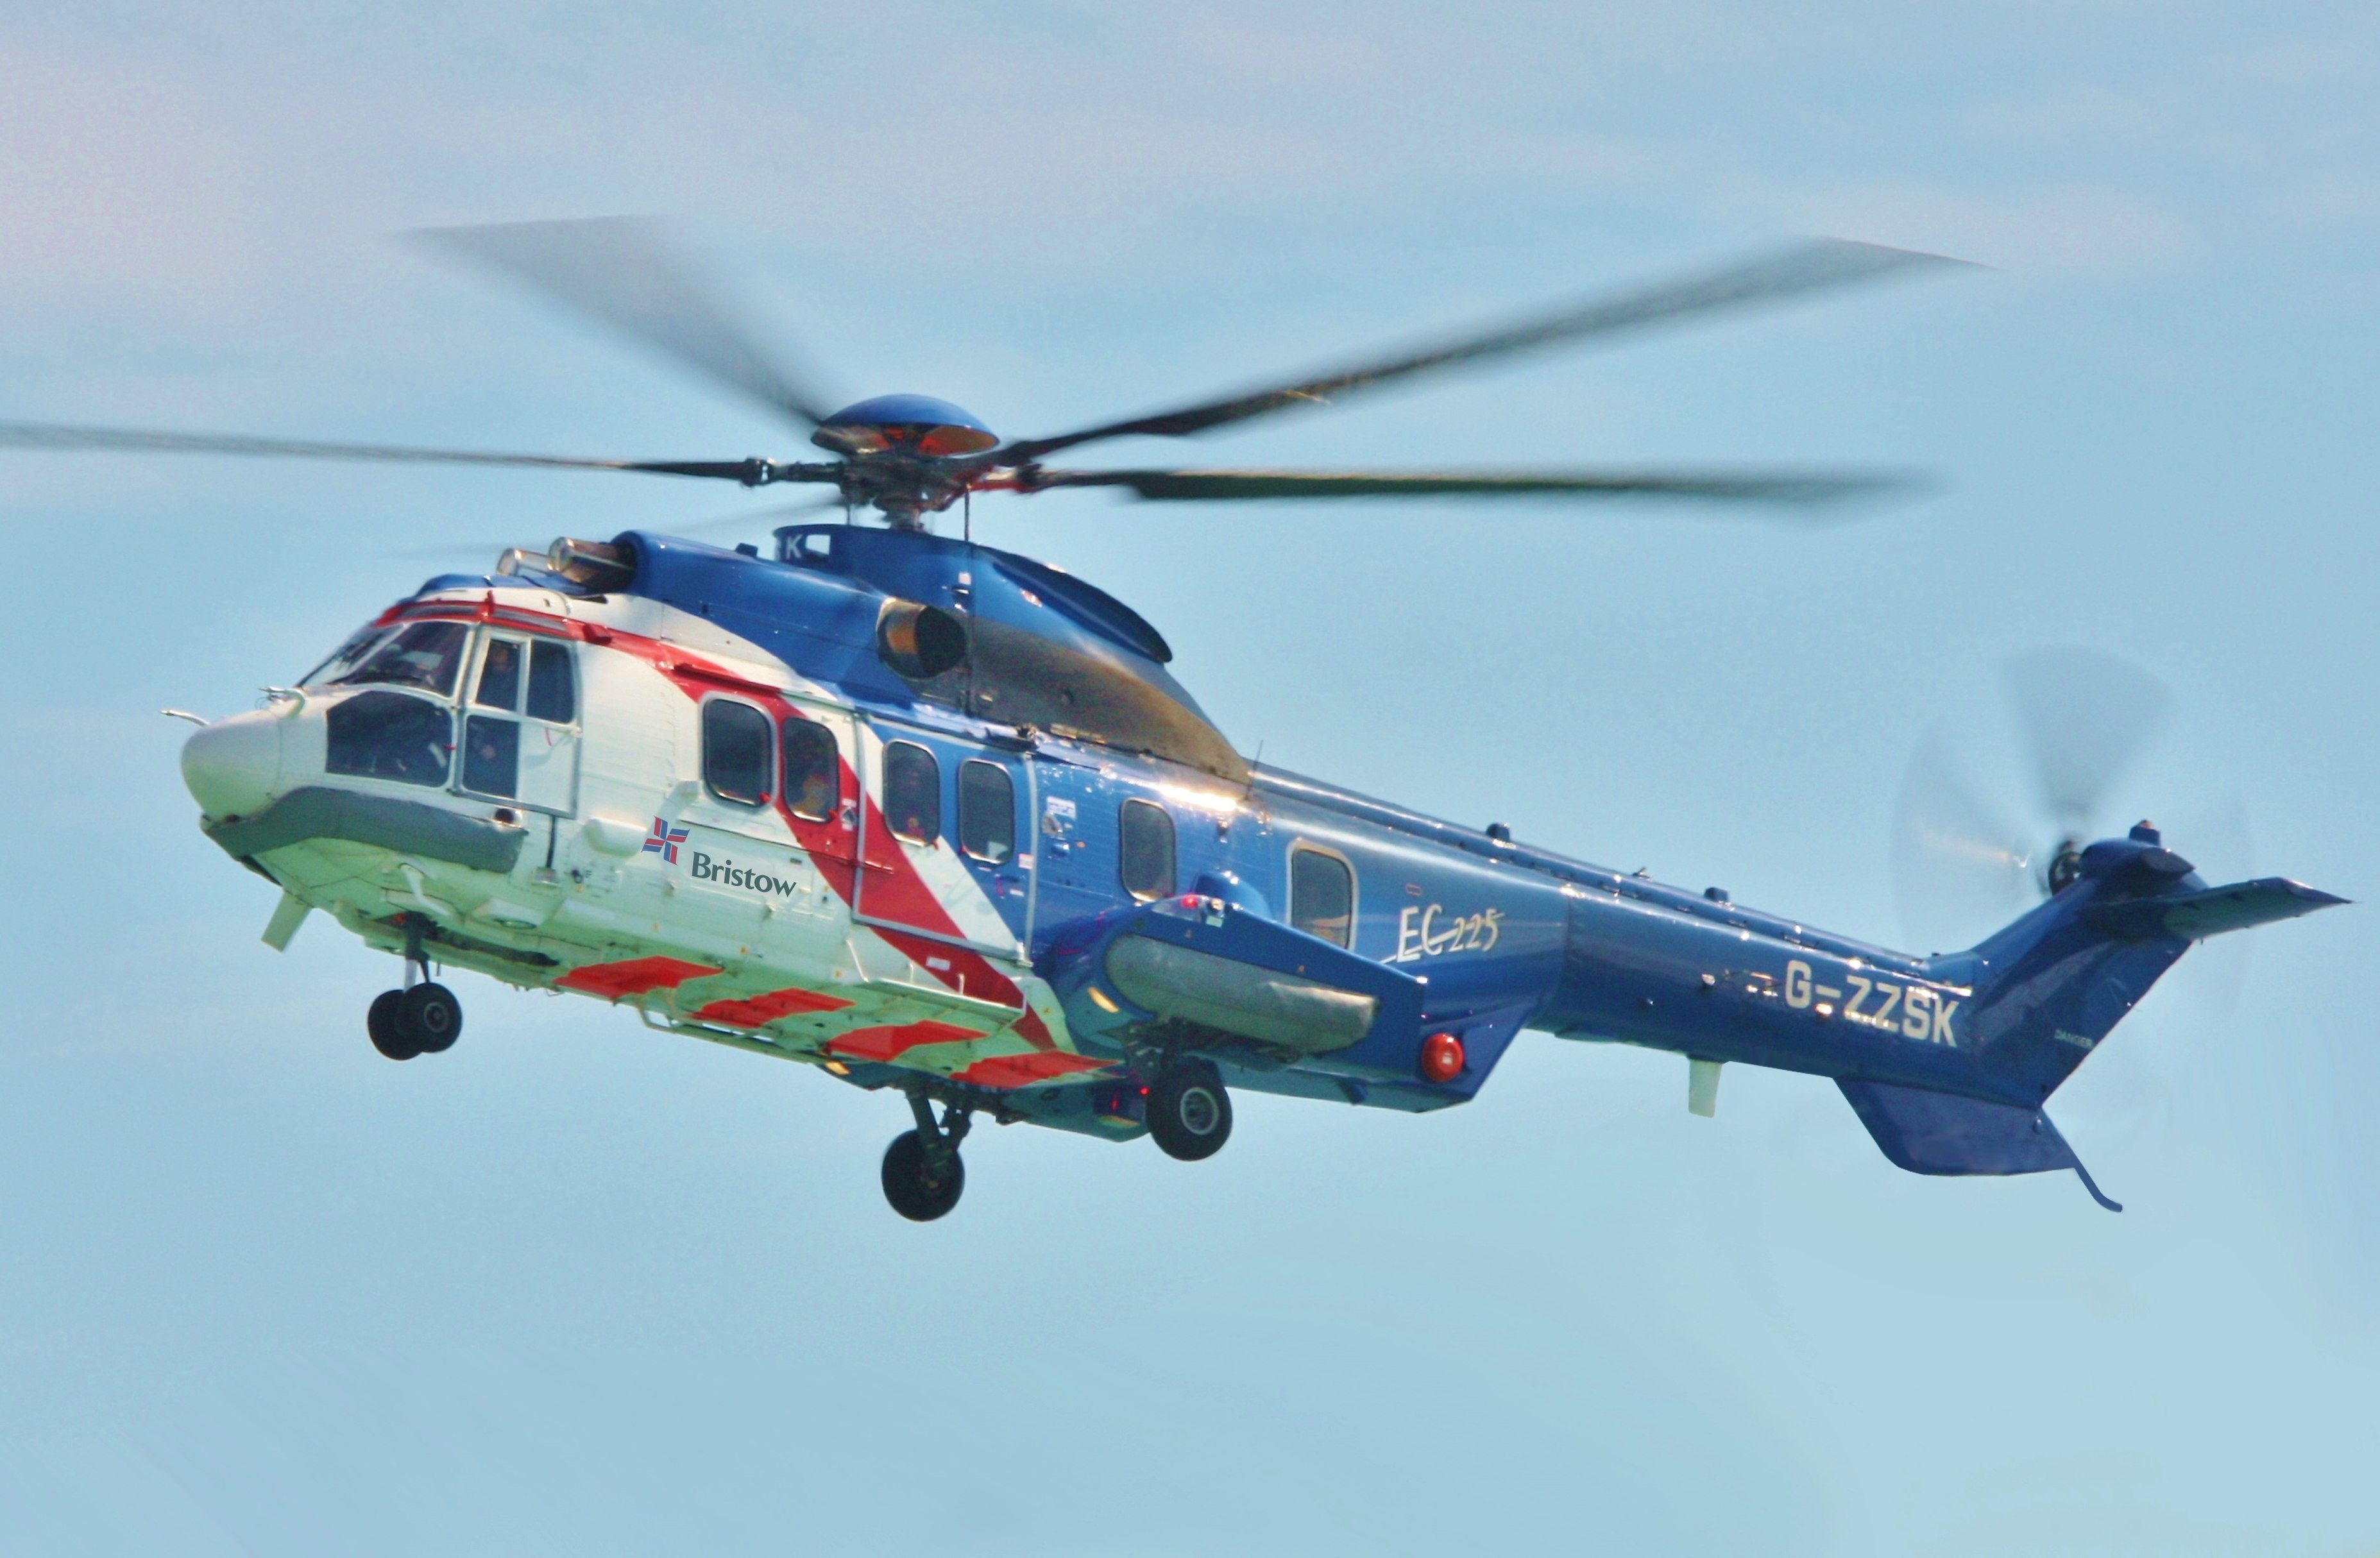 Eurocopter EC225 Super Puma - The complete information and online